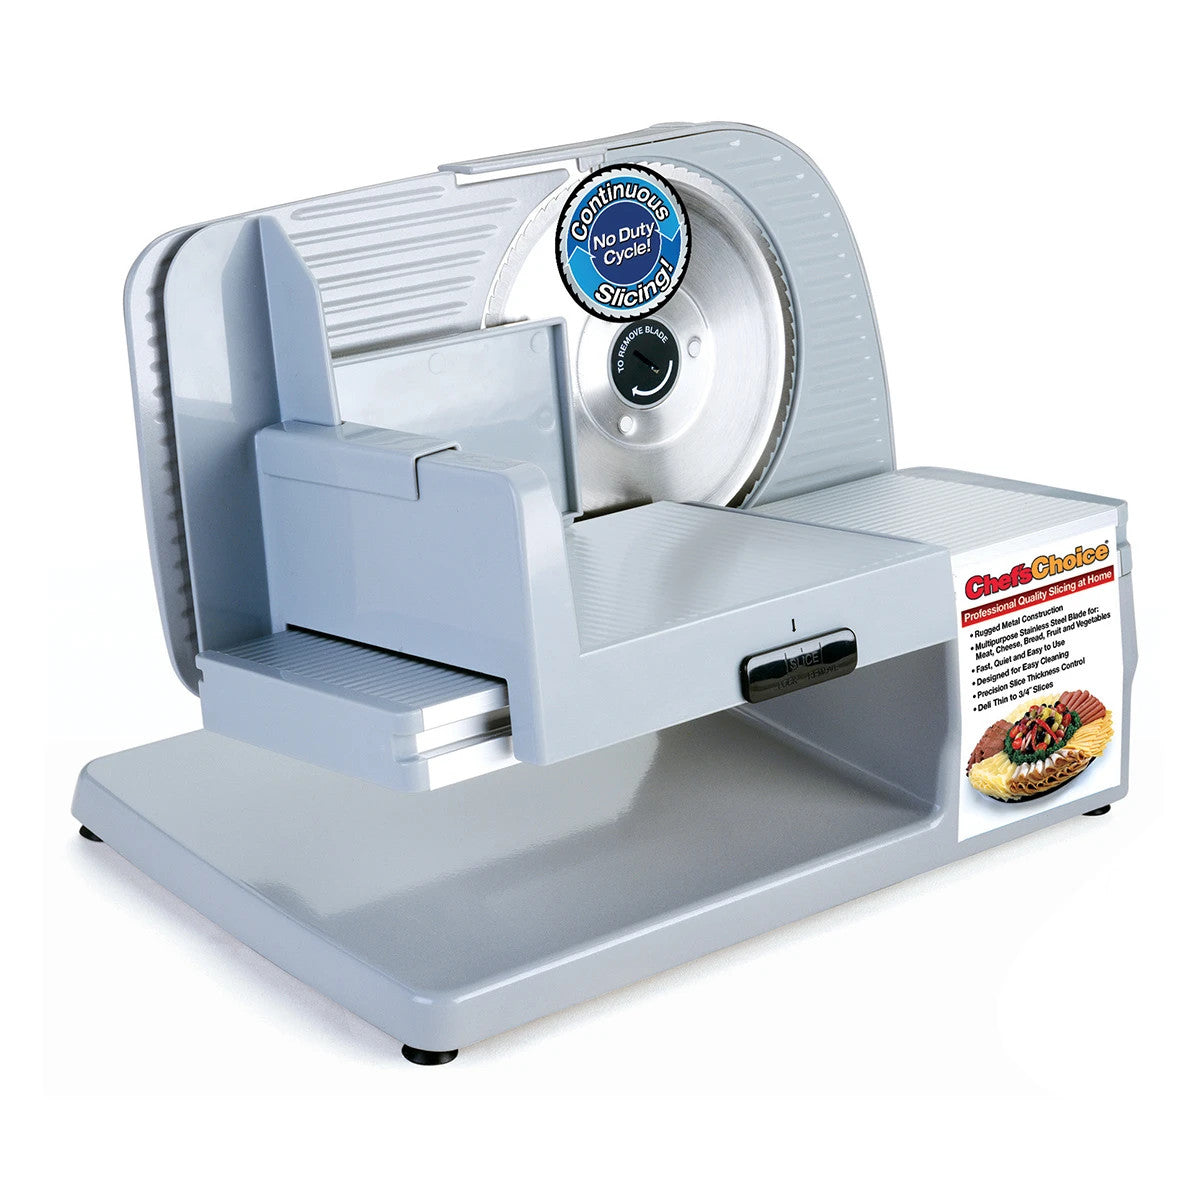 Image of Chef's Choice 6102 Premium Electric Food Slicer, Refurbished